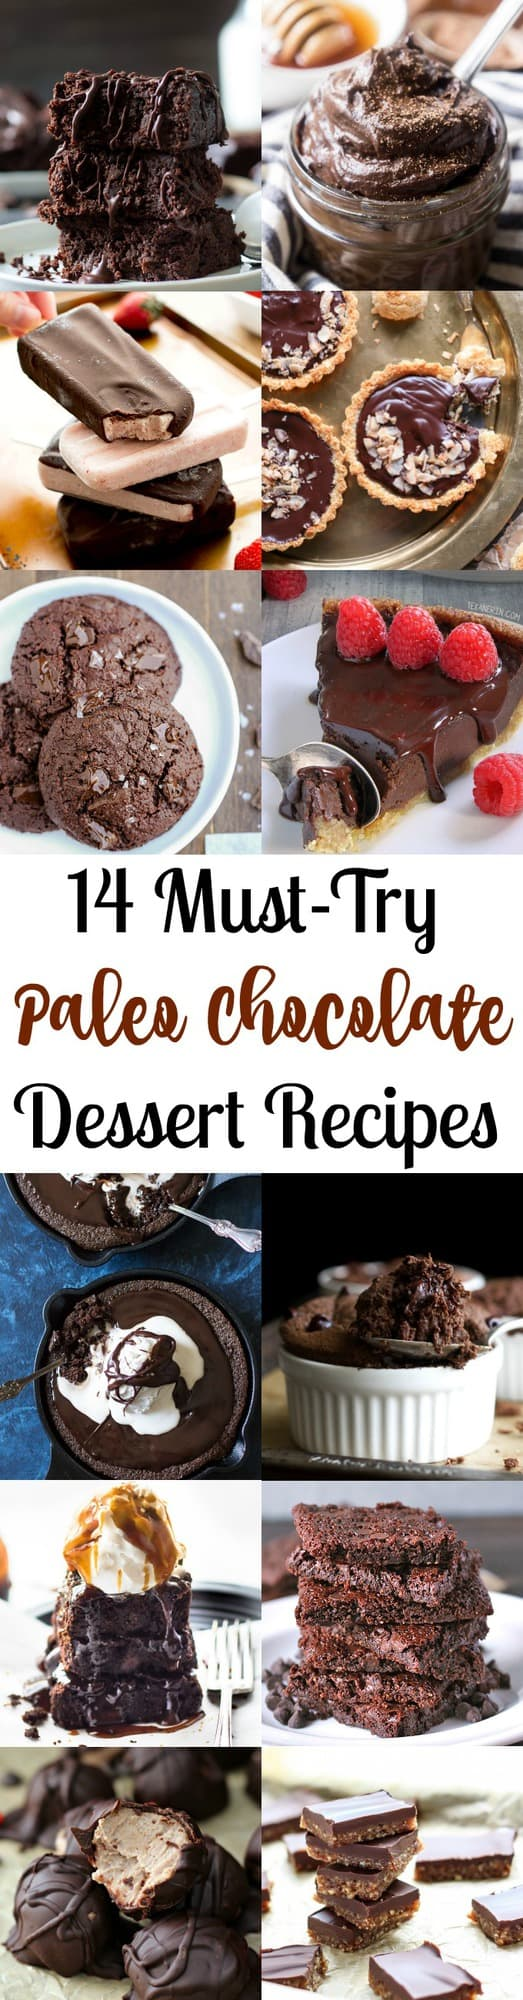 14 Must-Try Paleo Chocolate Dessert Recipes | The Paleo Running Momma